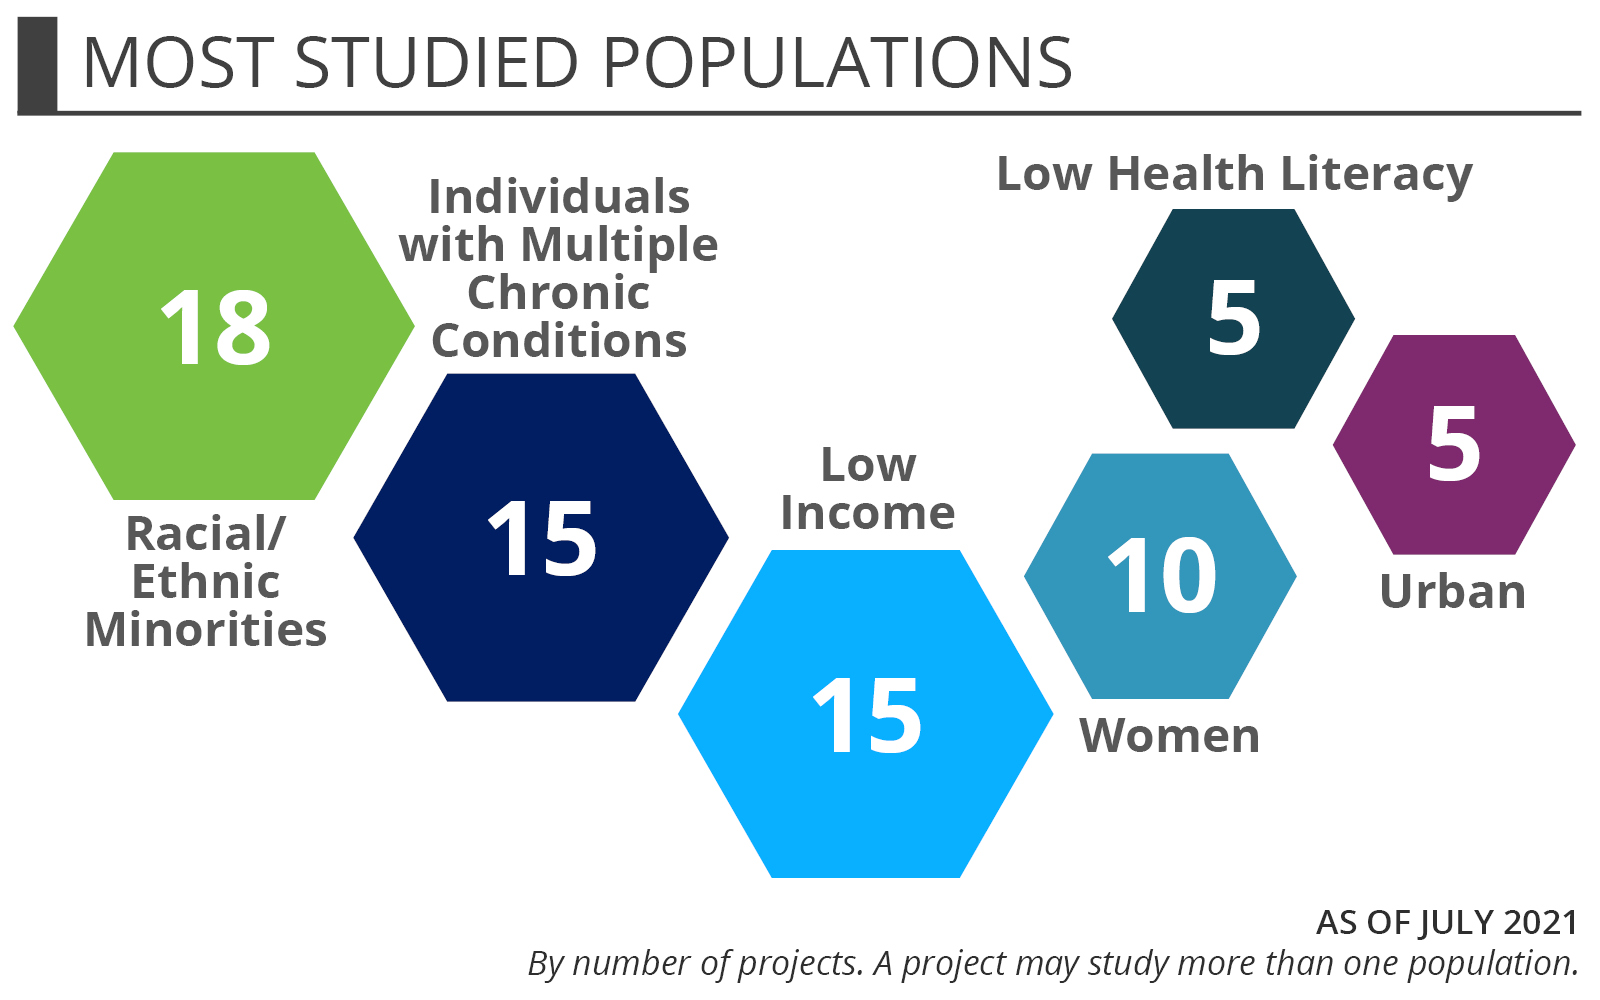 The most studied populations of projects that PCORI funds for older adults' health: